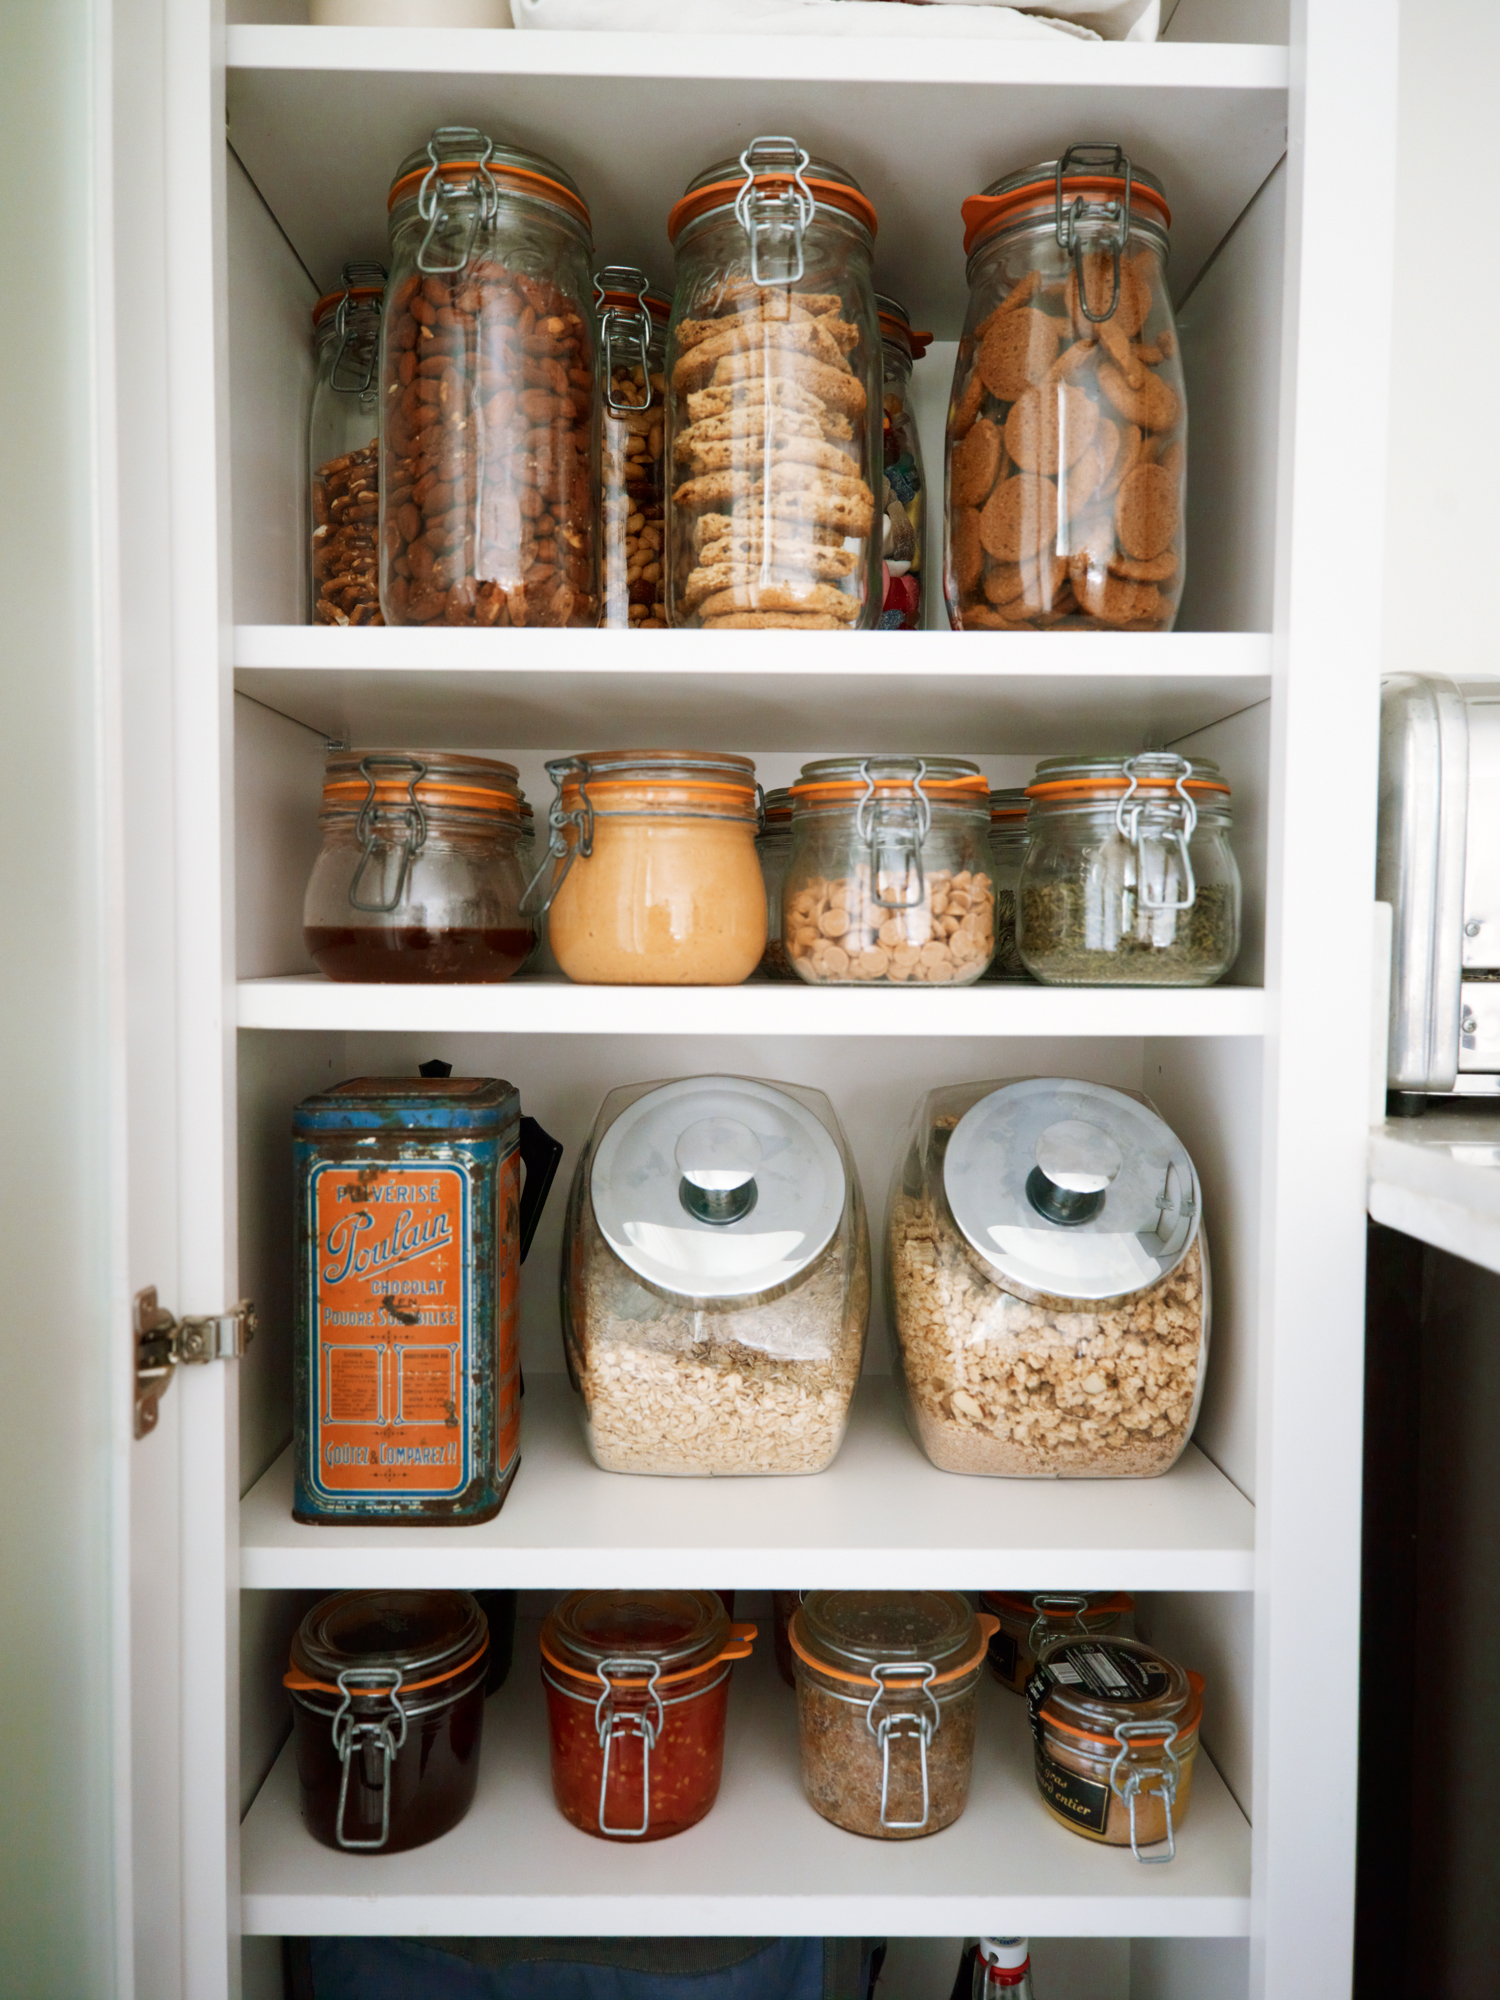 Zero-Waste Tips: Make Your Own Pantry Items